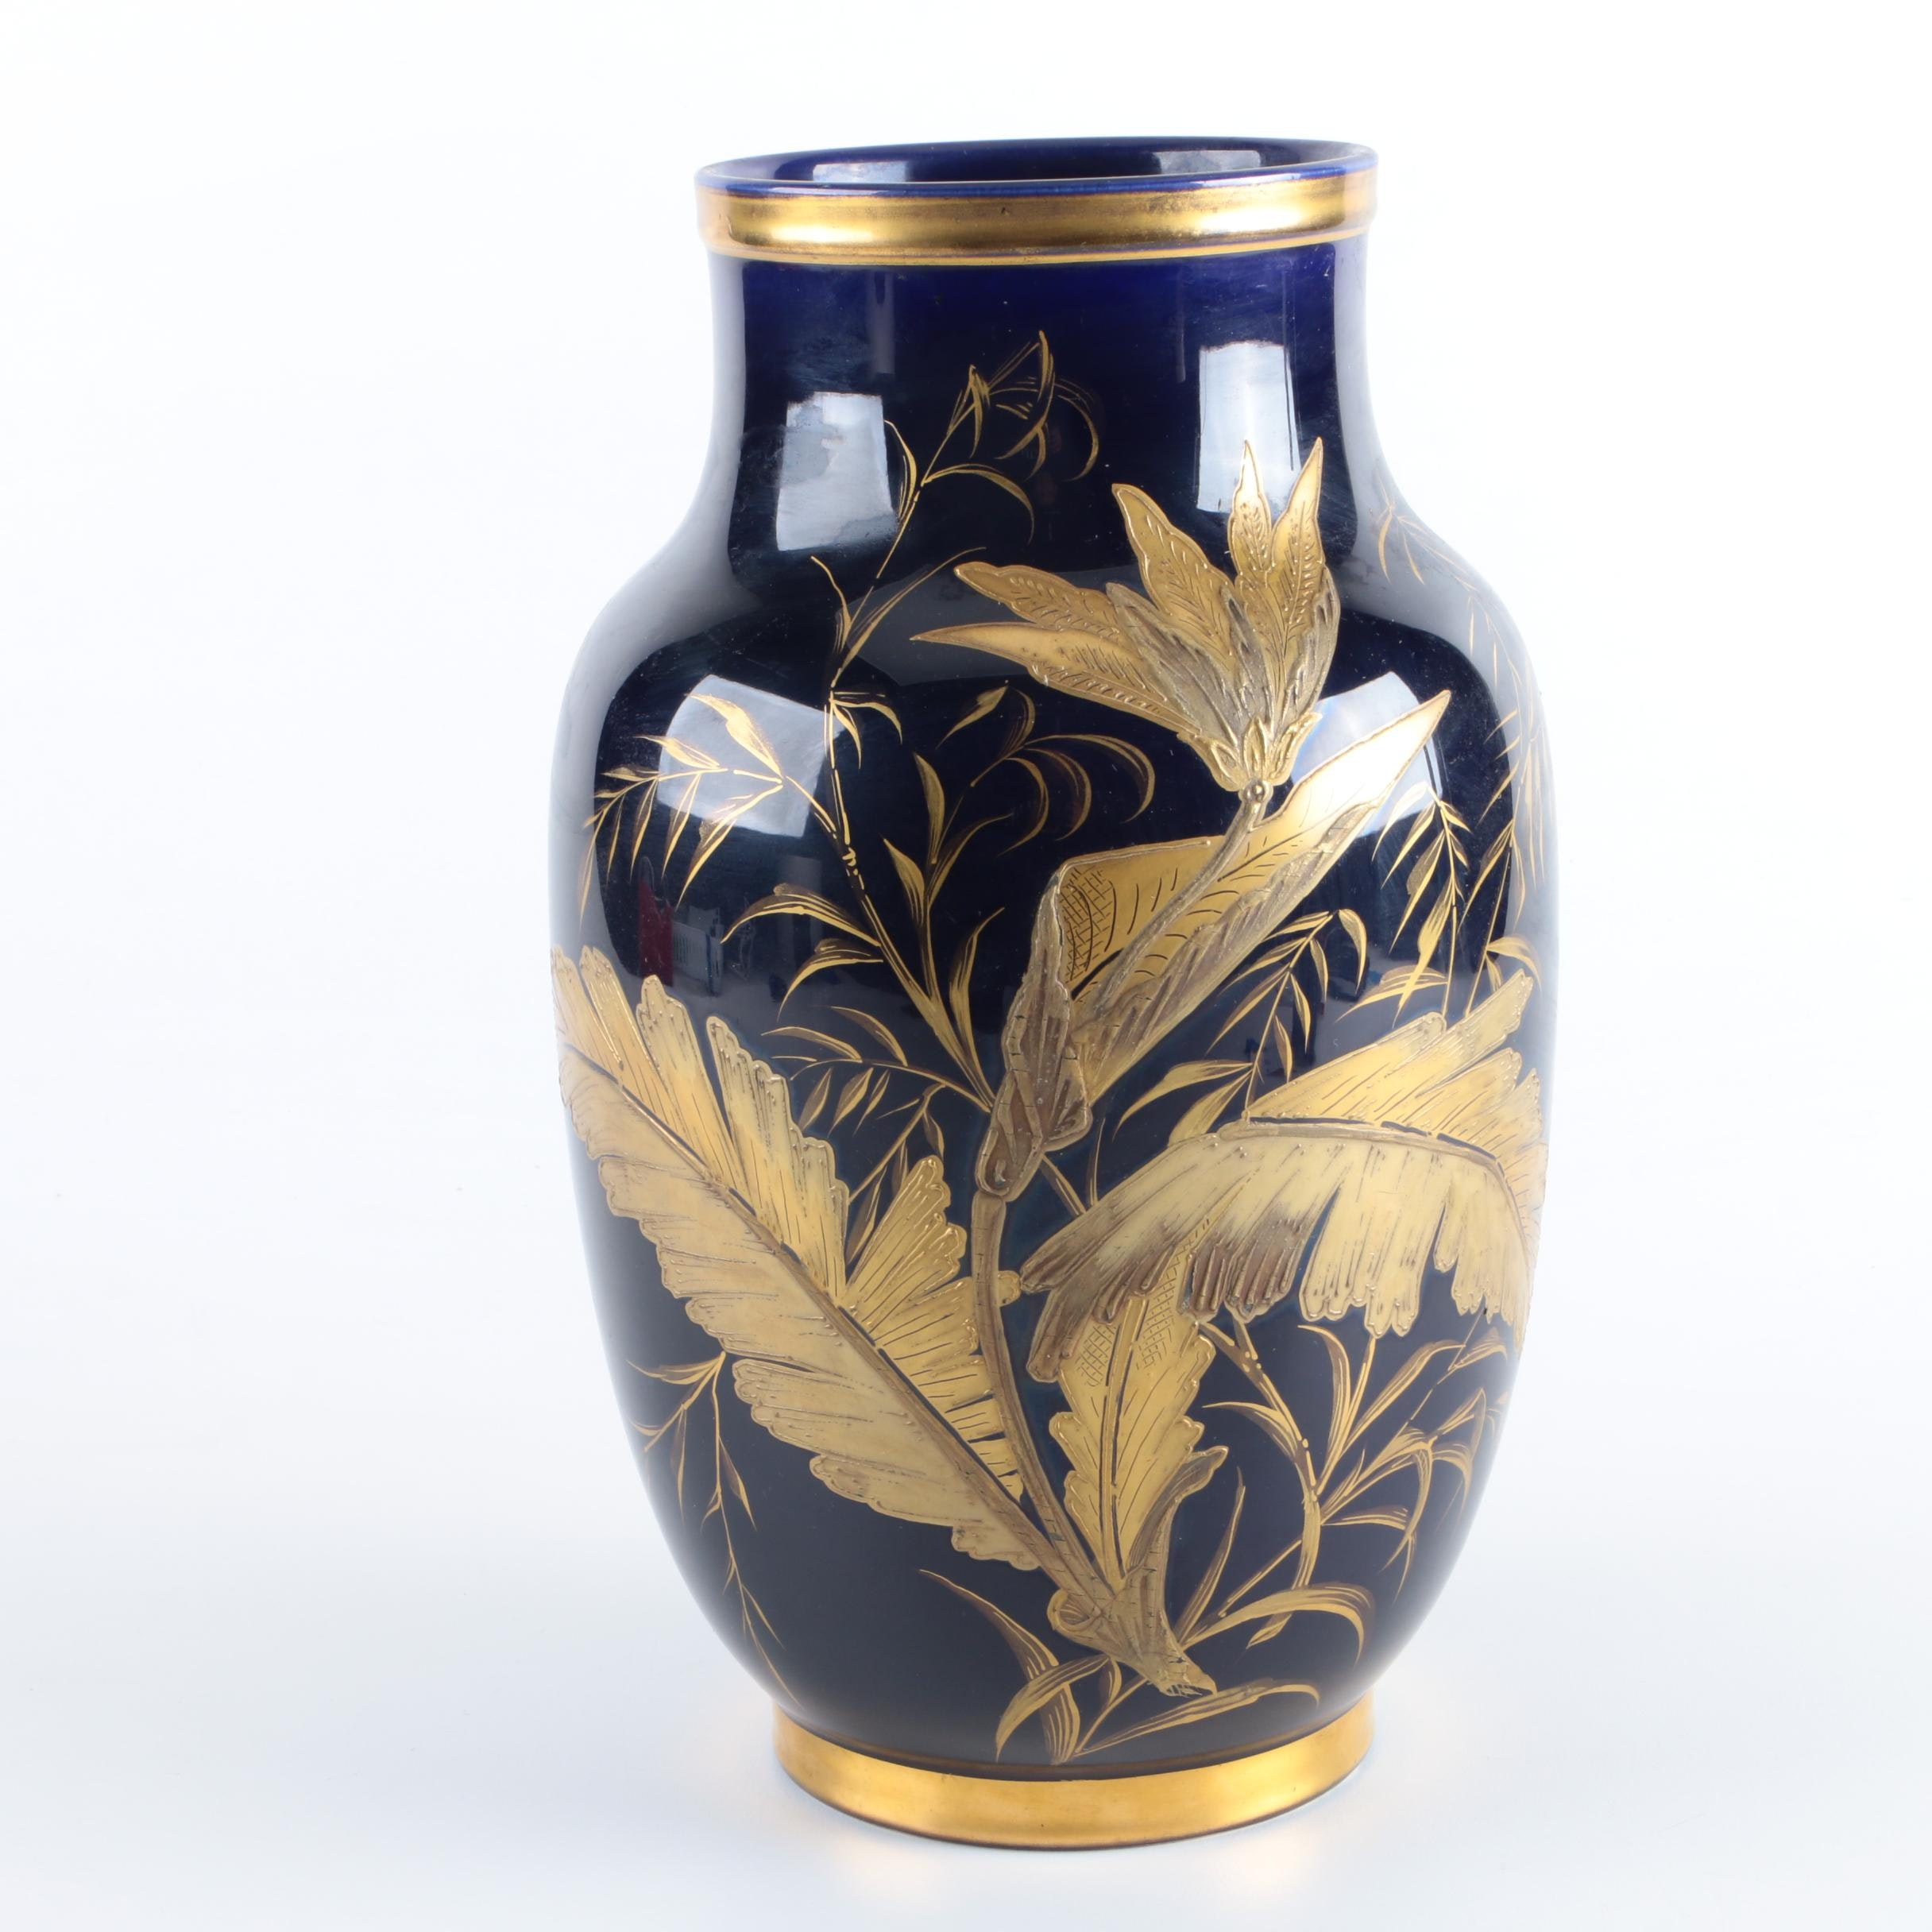 Blue Vase with Gold Tone Leaf Motif